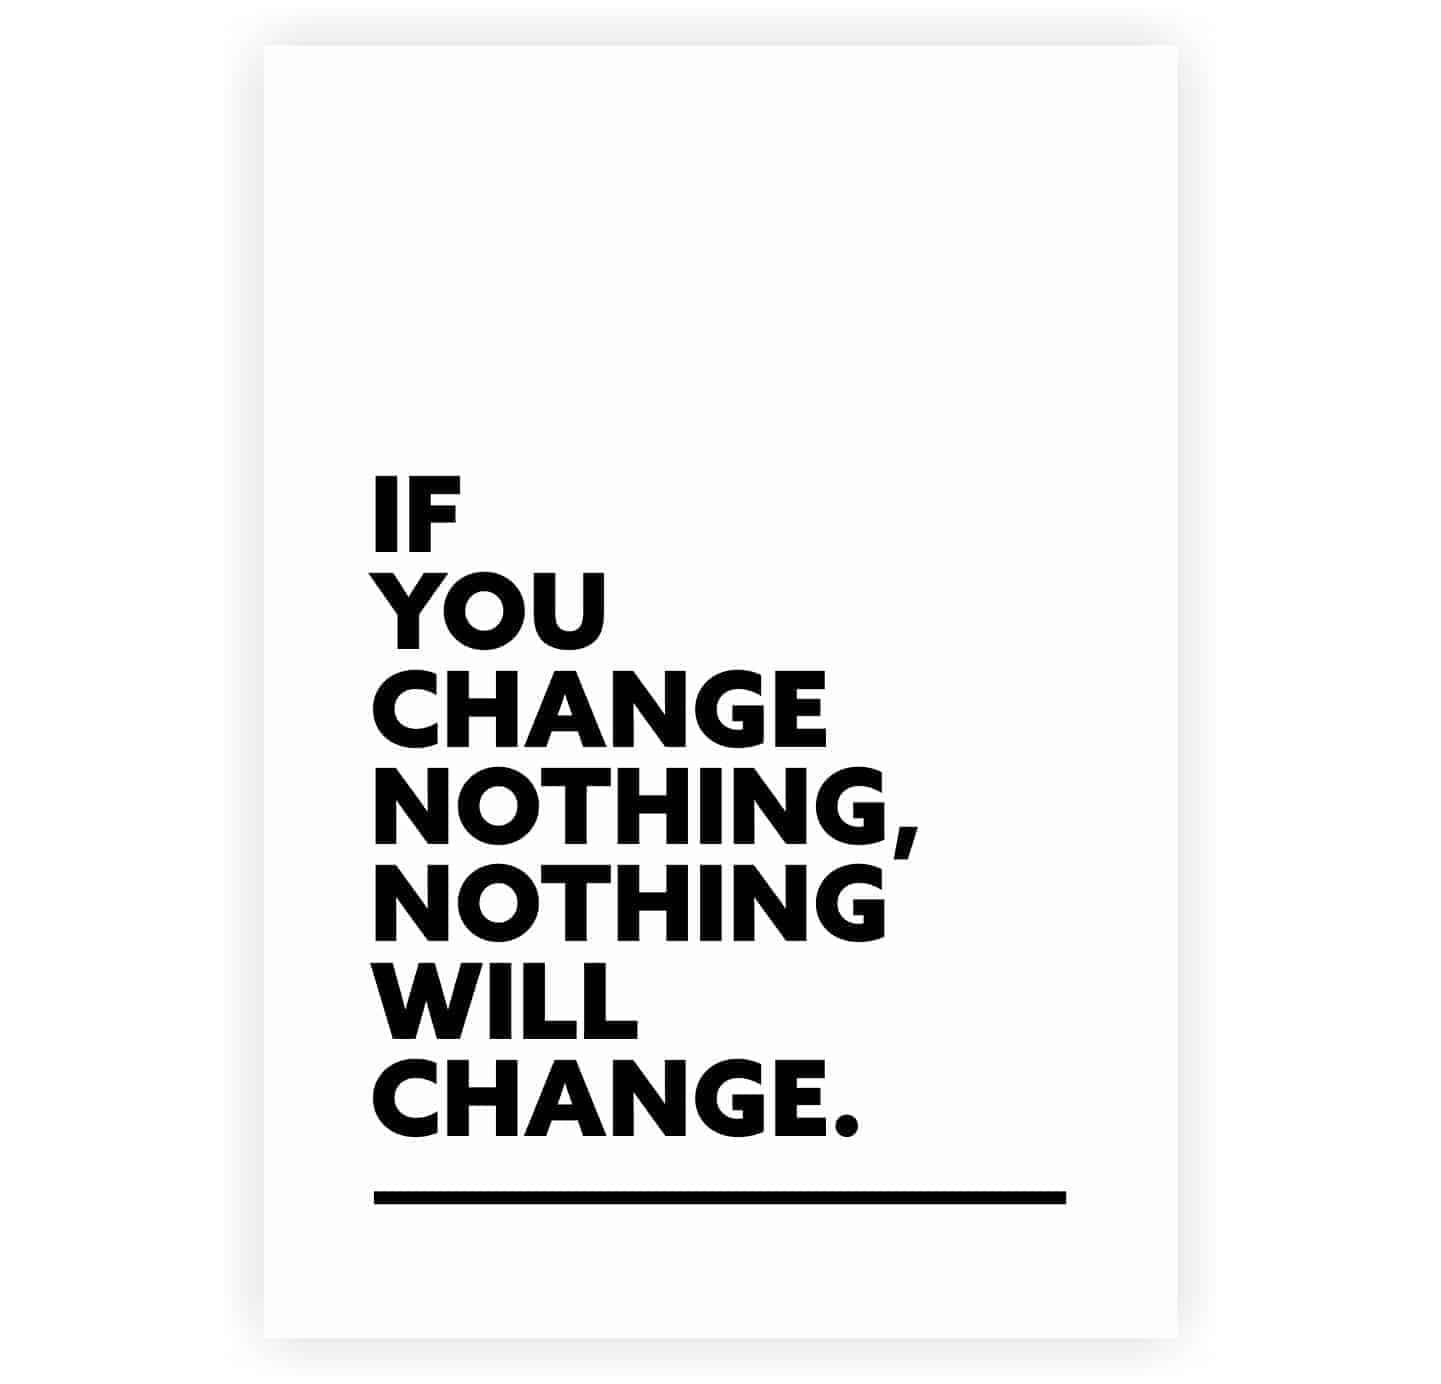 ** Embrace change. Change is the one certainty in life. Without change, there is no growth. But our